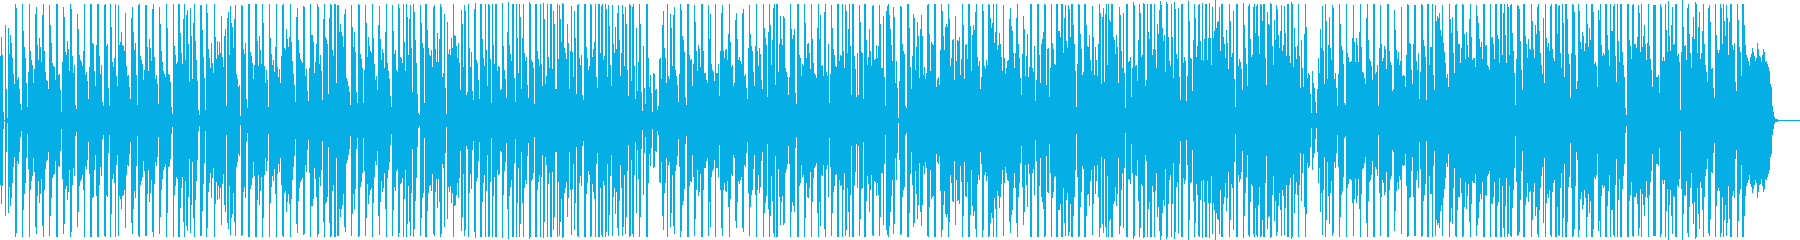 Happy BGM with whistling and pianica's reproduced waveform